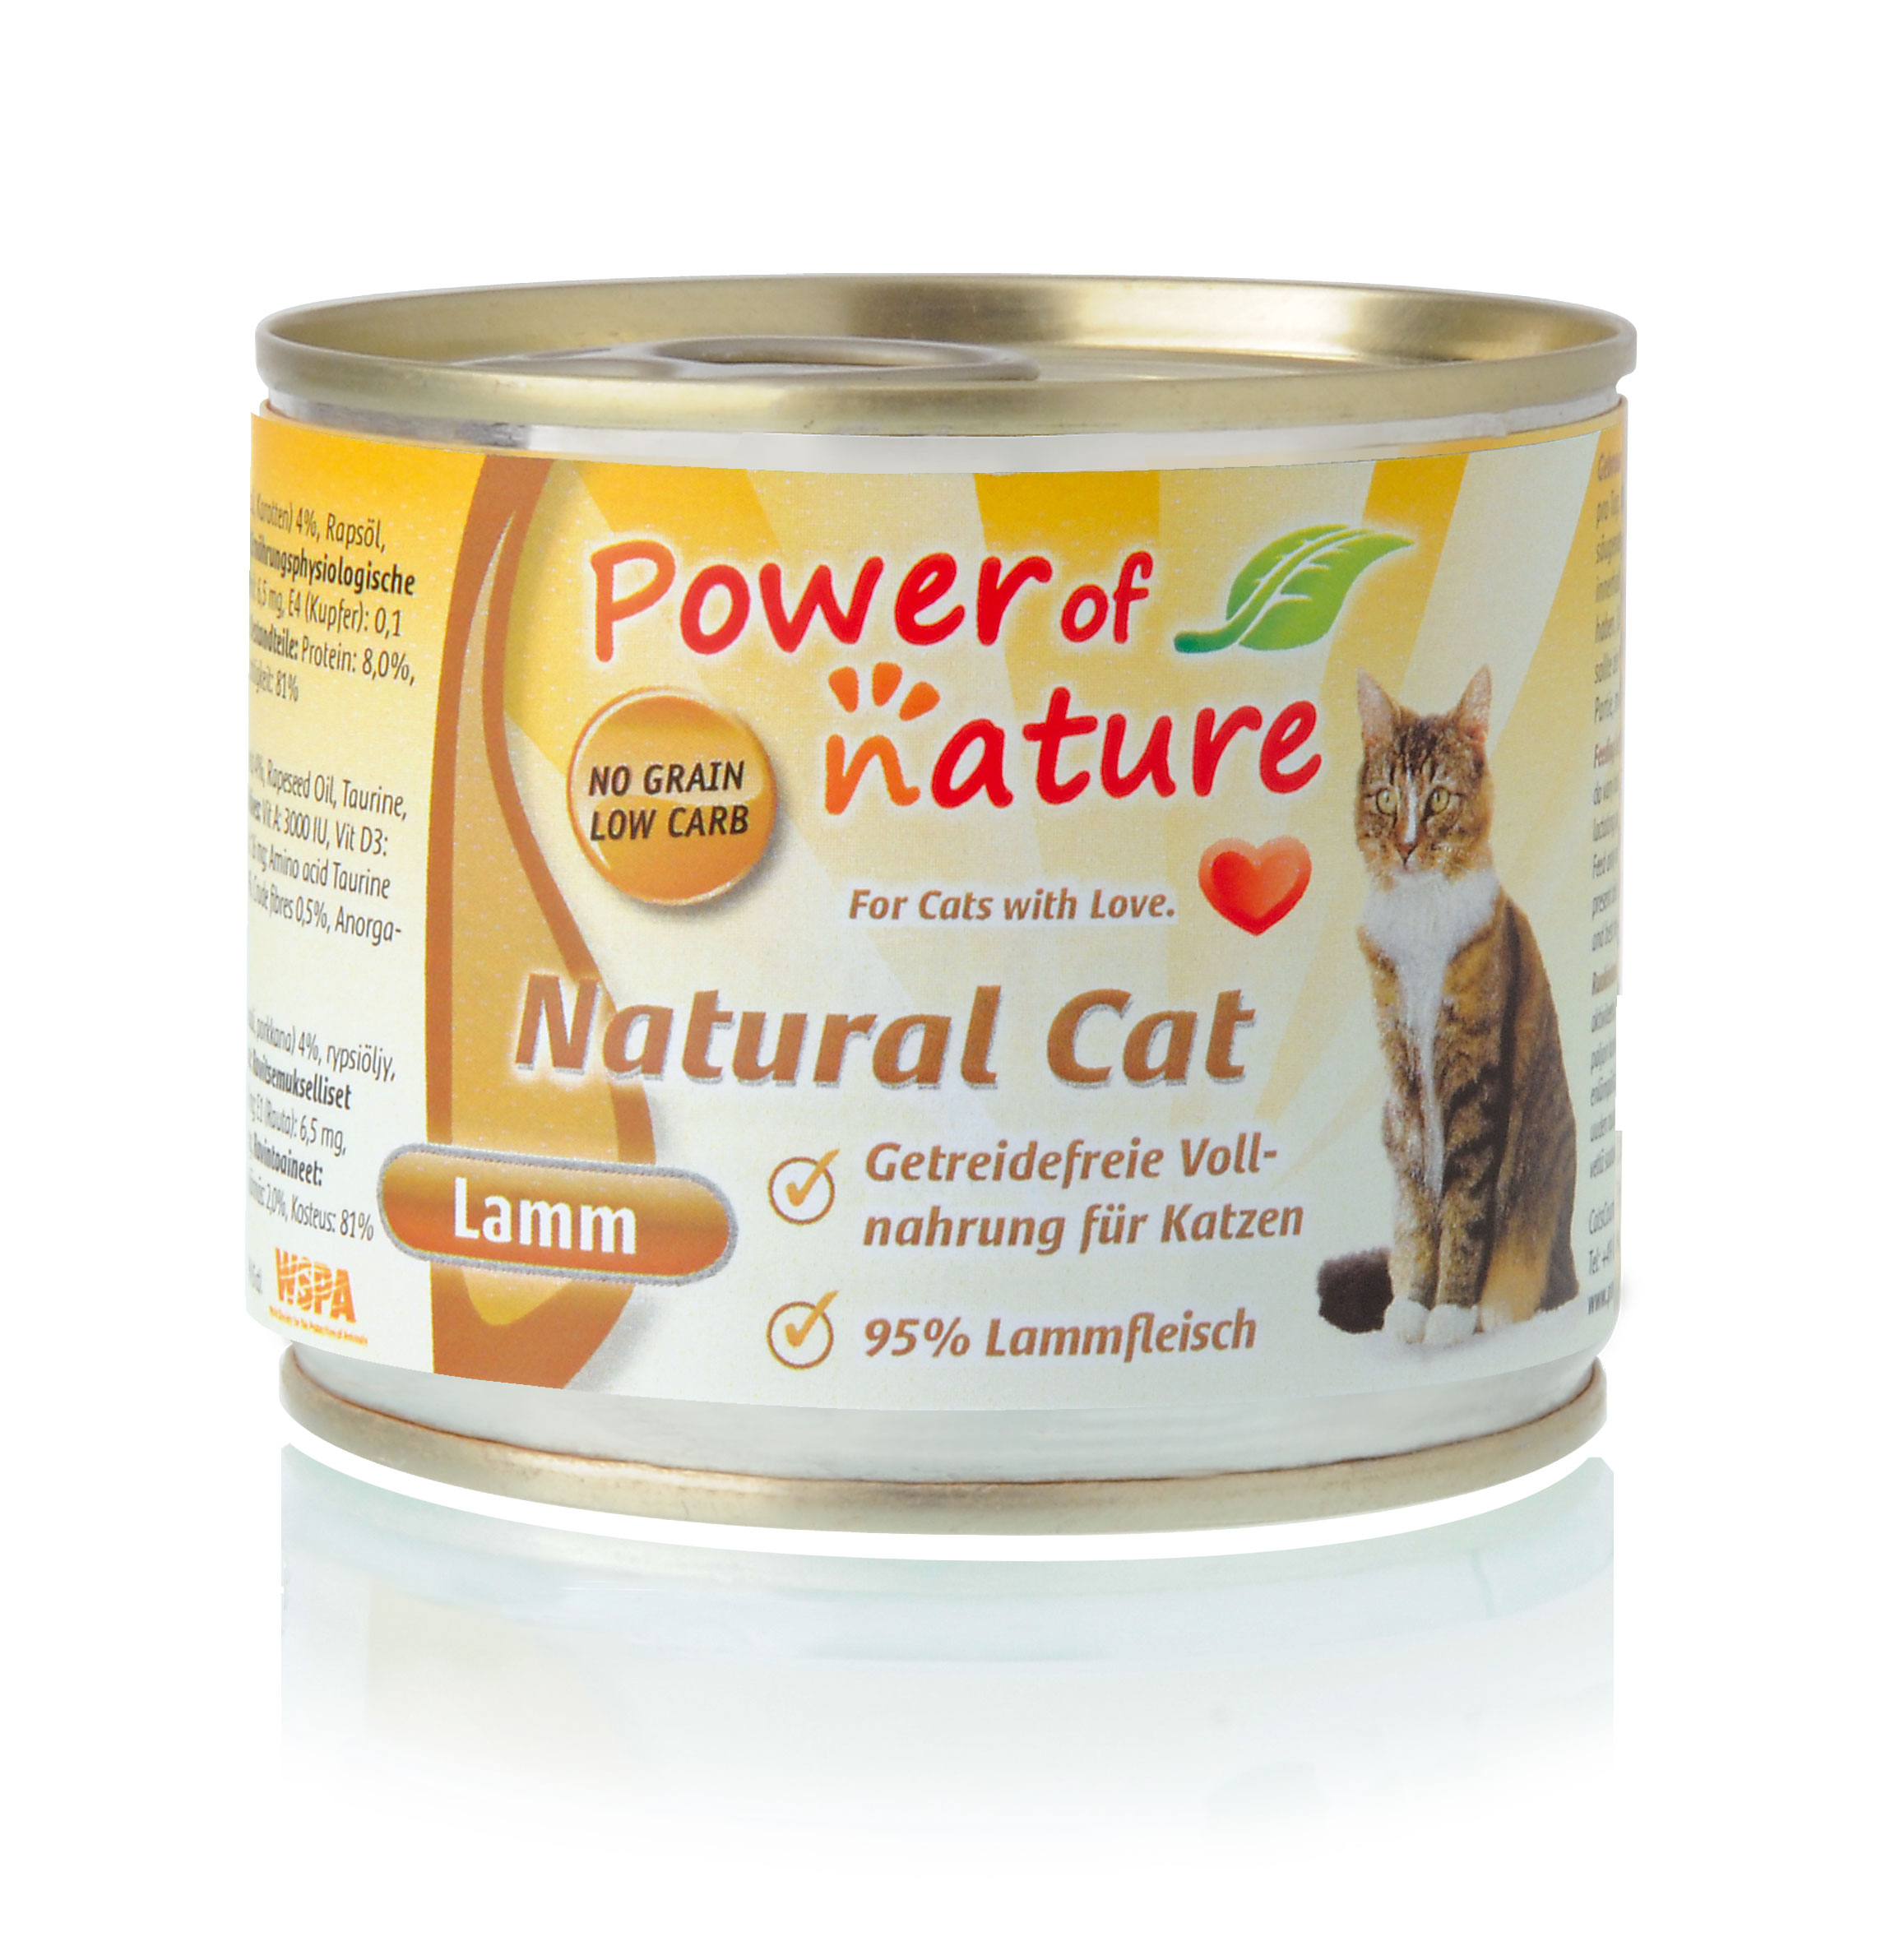 Power of Nature Natural Cat Dose Lamm 200g